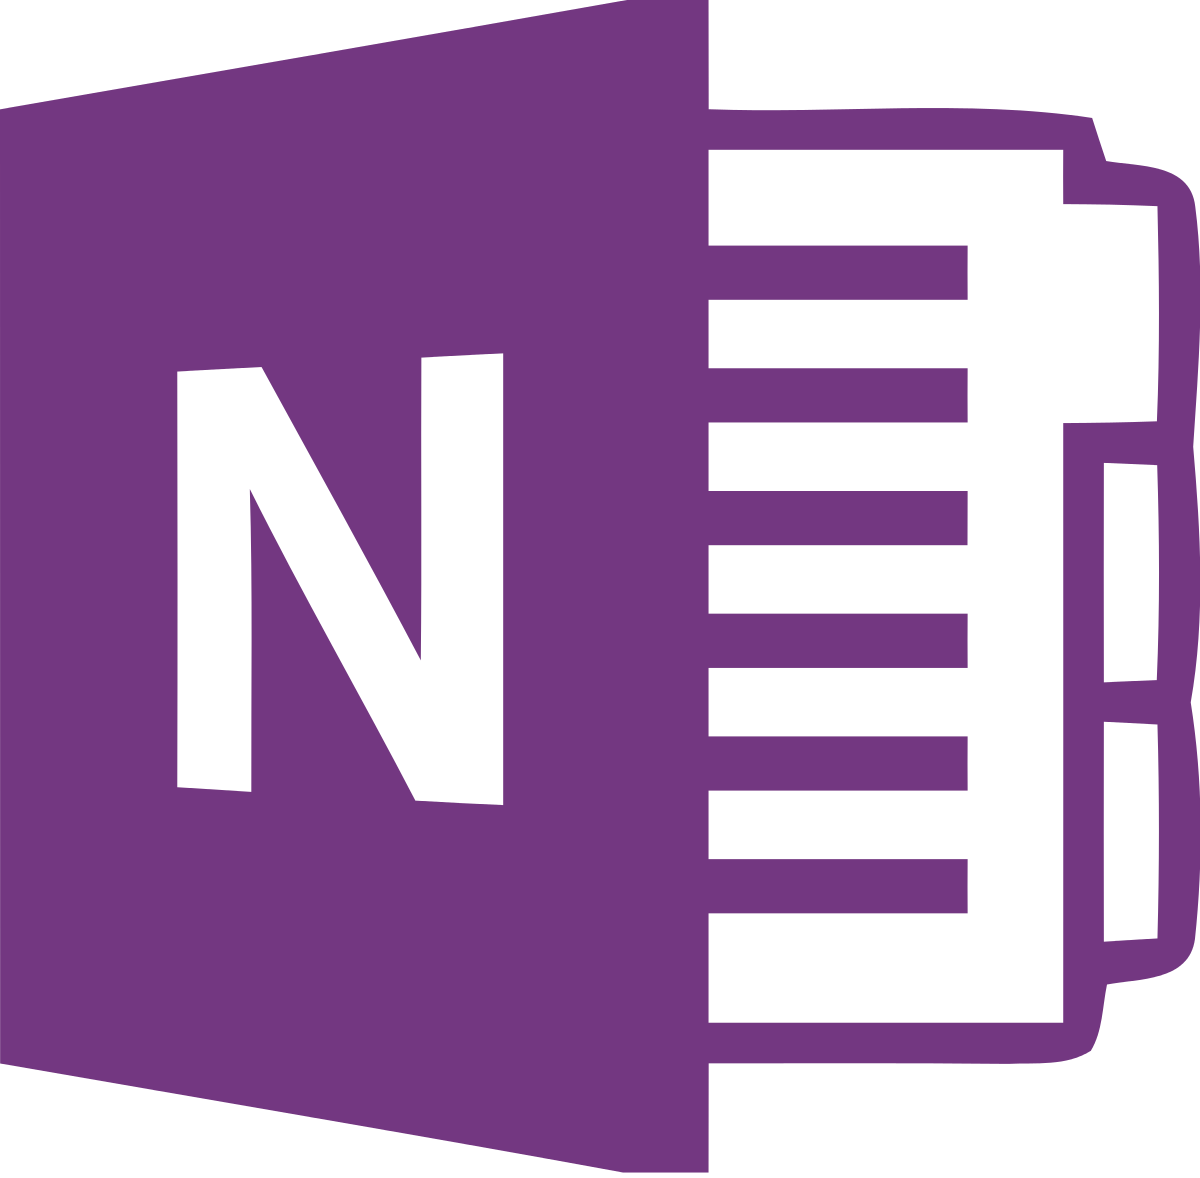 Onenote wikipedia . Clipart definition microsoft office